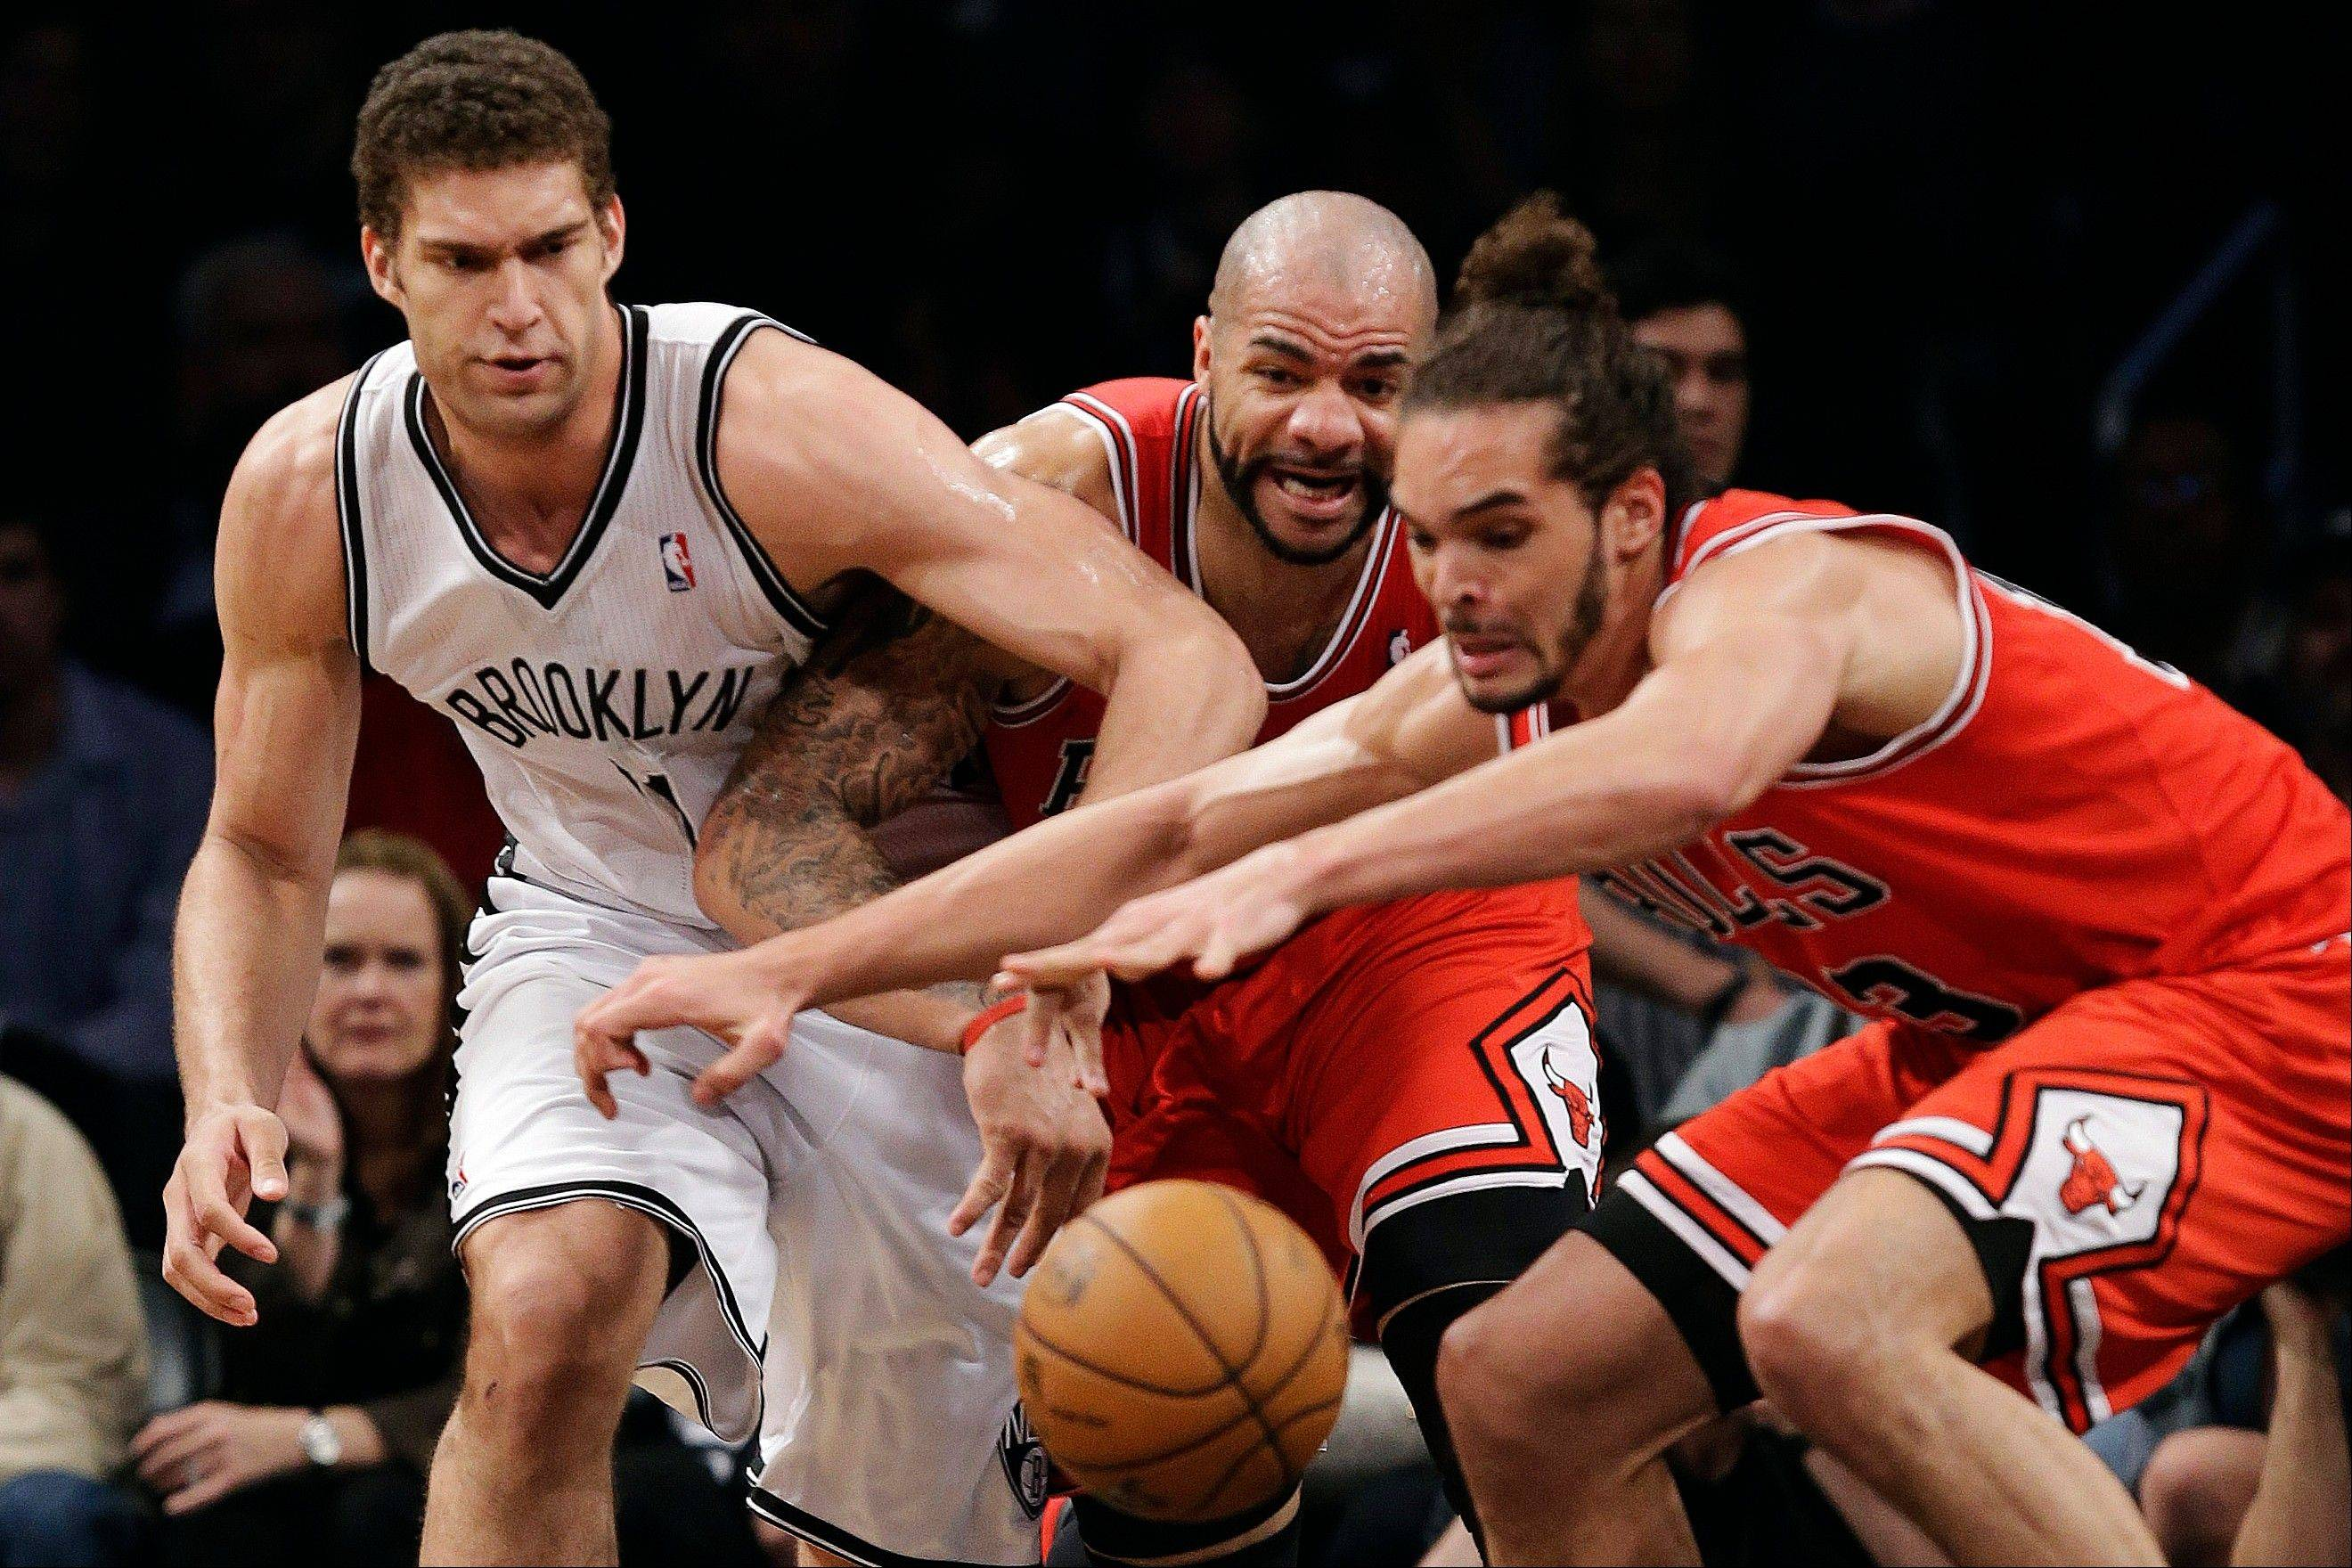 Brooklyn Nets center Brook Lopez (11), Chicago Bulls forward Carlos Boozer, center, and center Joakim Noah, right, compete for a loose ball in the first half of Game 5 of their first-round NBA basketball playoff series, Monday, April 29, 2013, in New York.